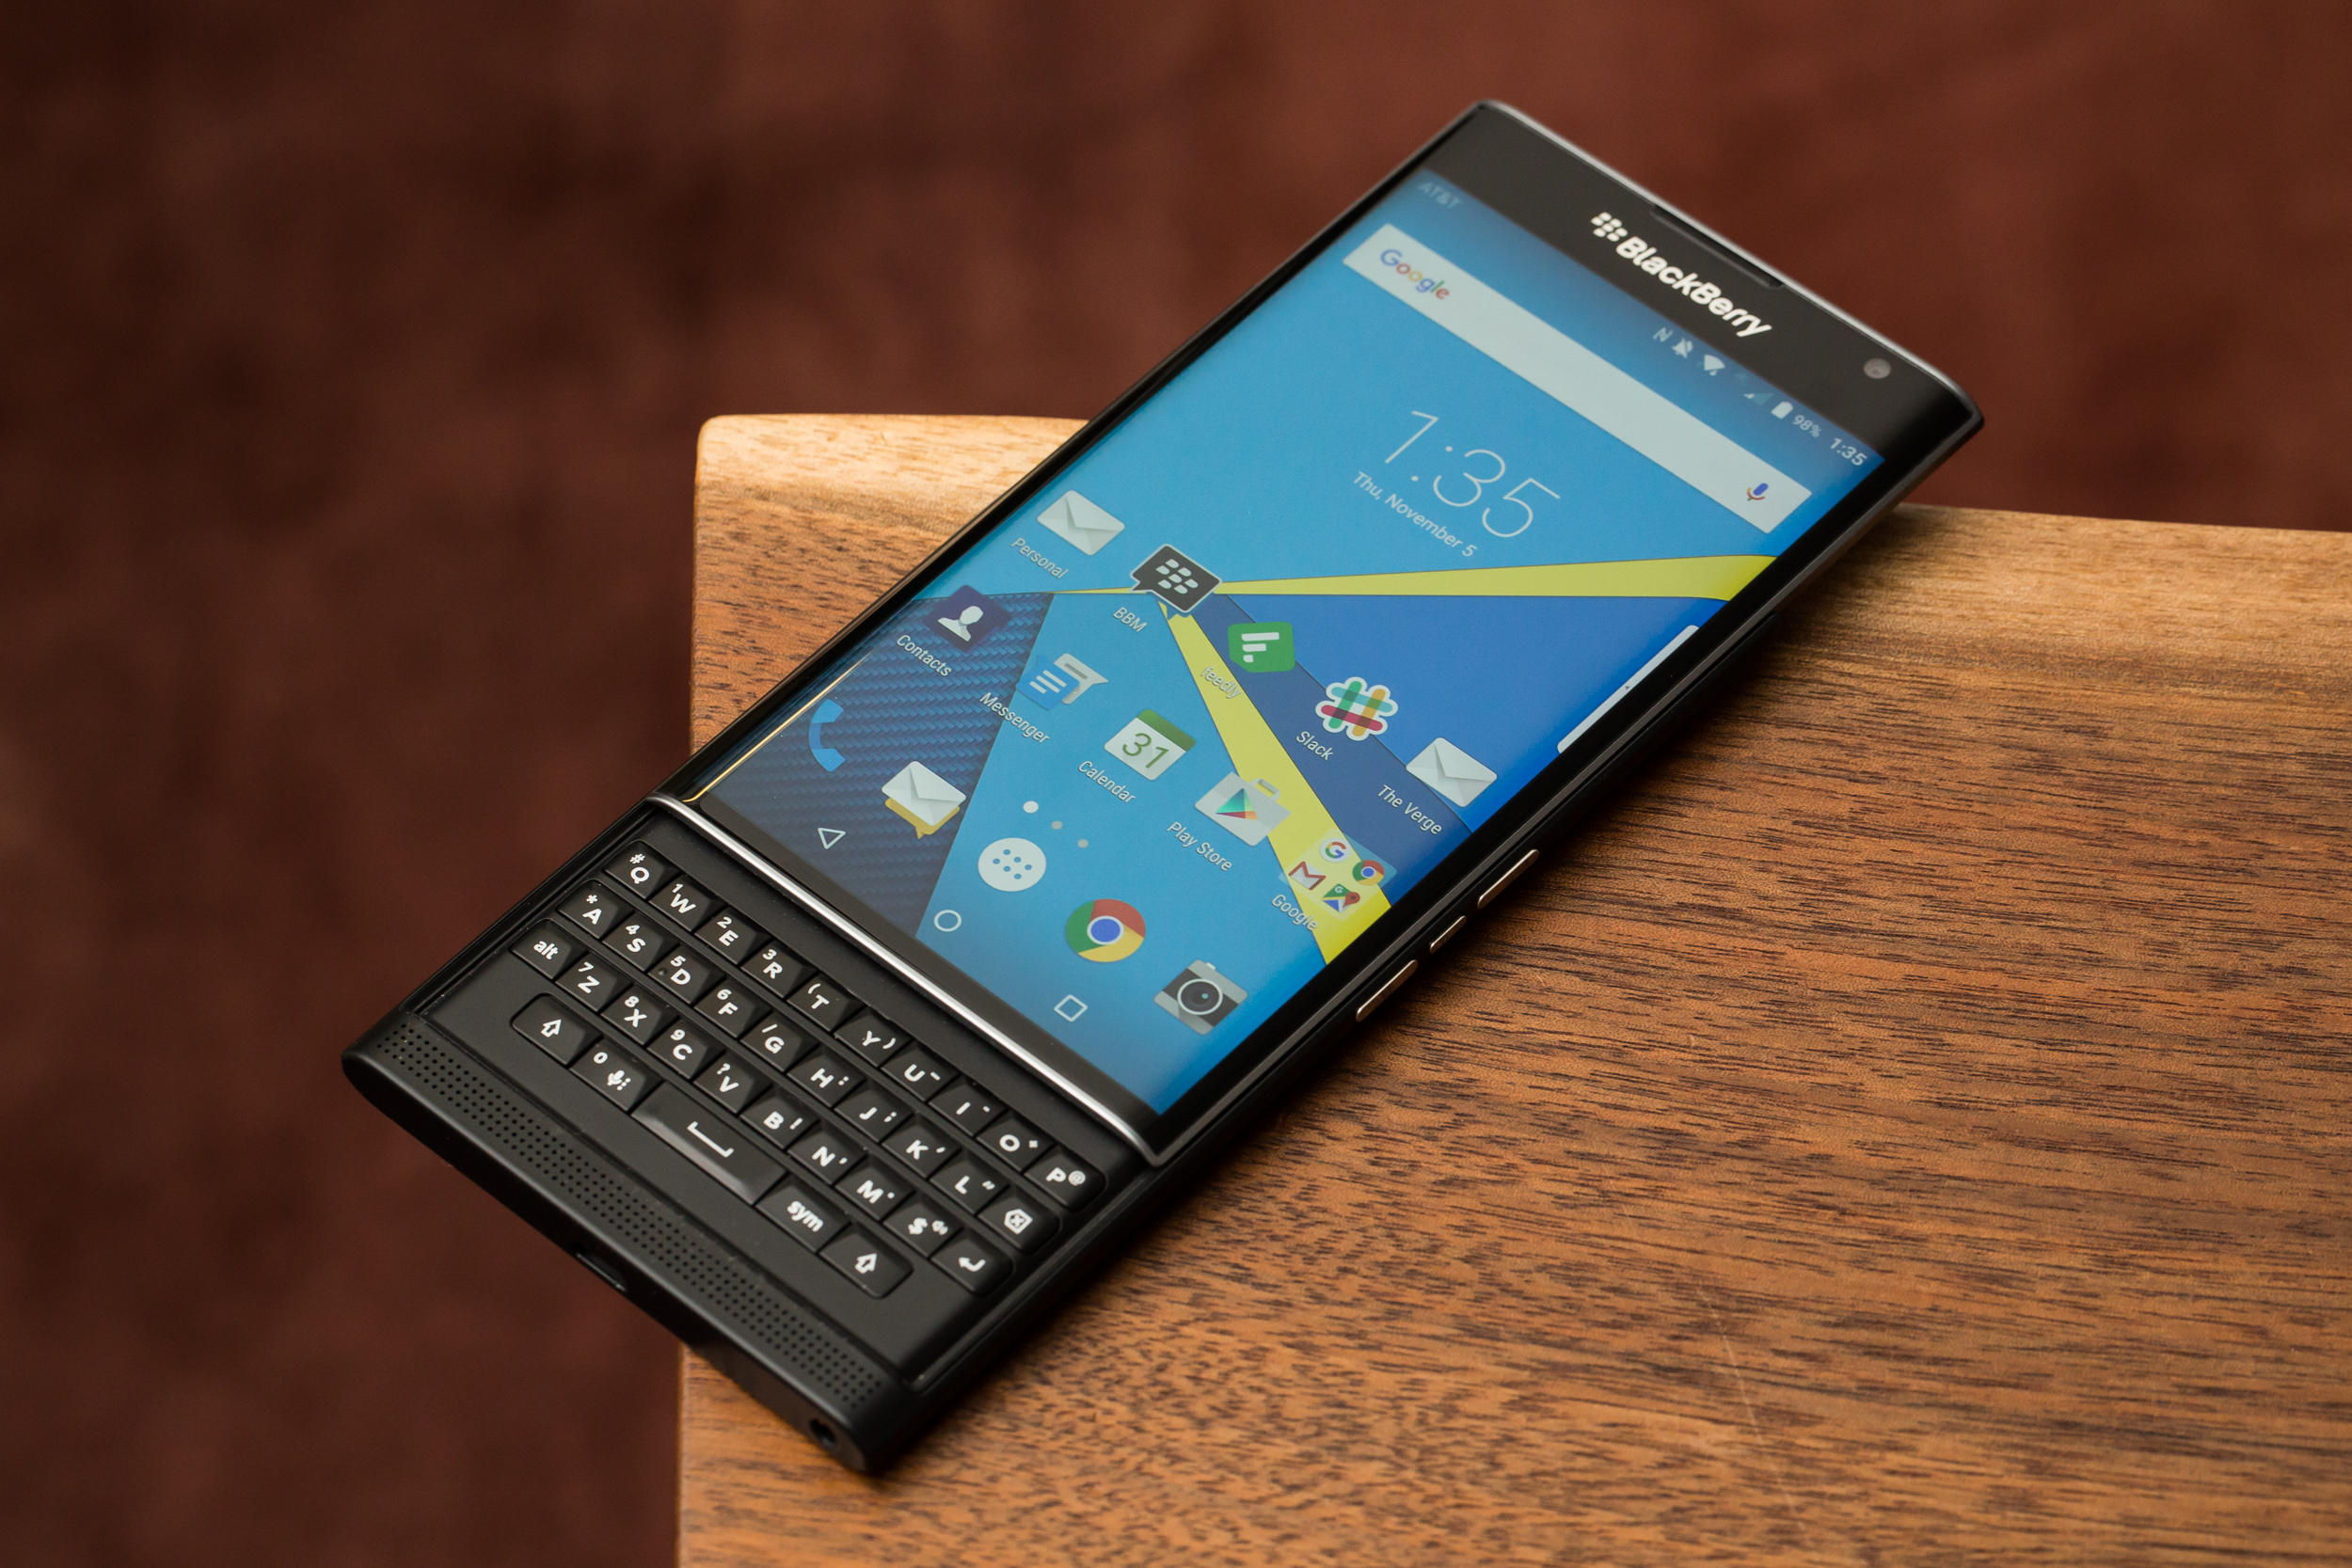 $269.99 Blackberry Priv AT&T Unlocked Smartphone - Black (U.S. Warranty)